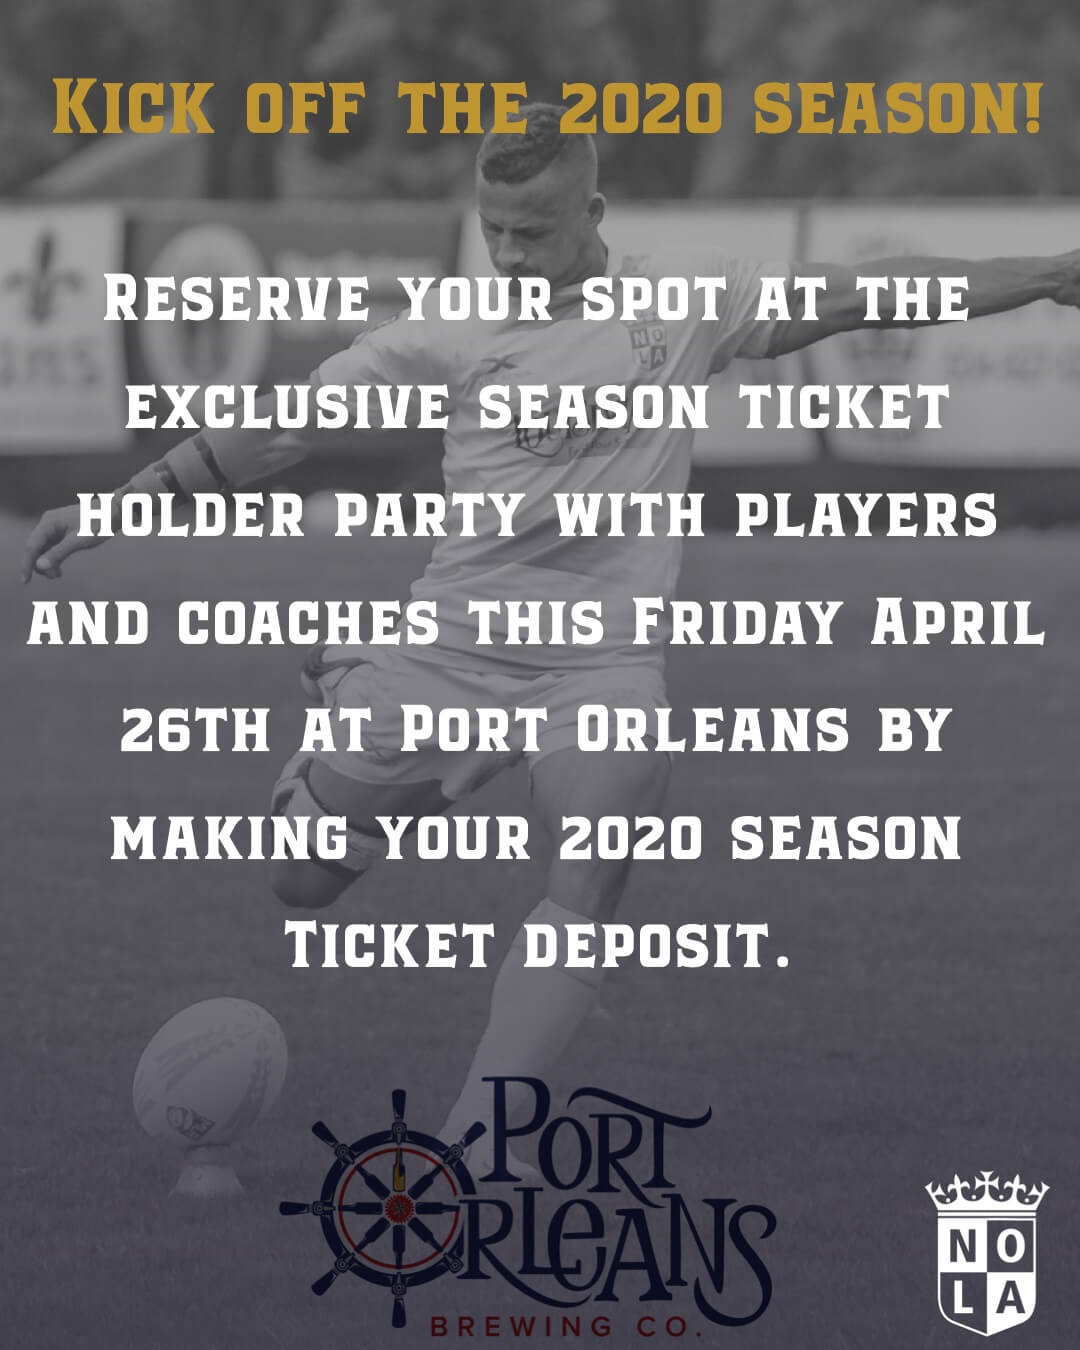 Season Ticket Holder Party at Port Orleans Brewing Co. this Friday!